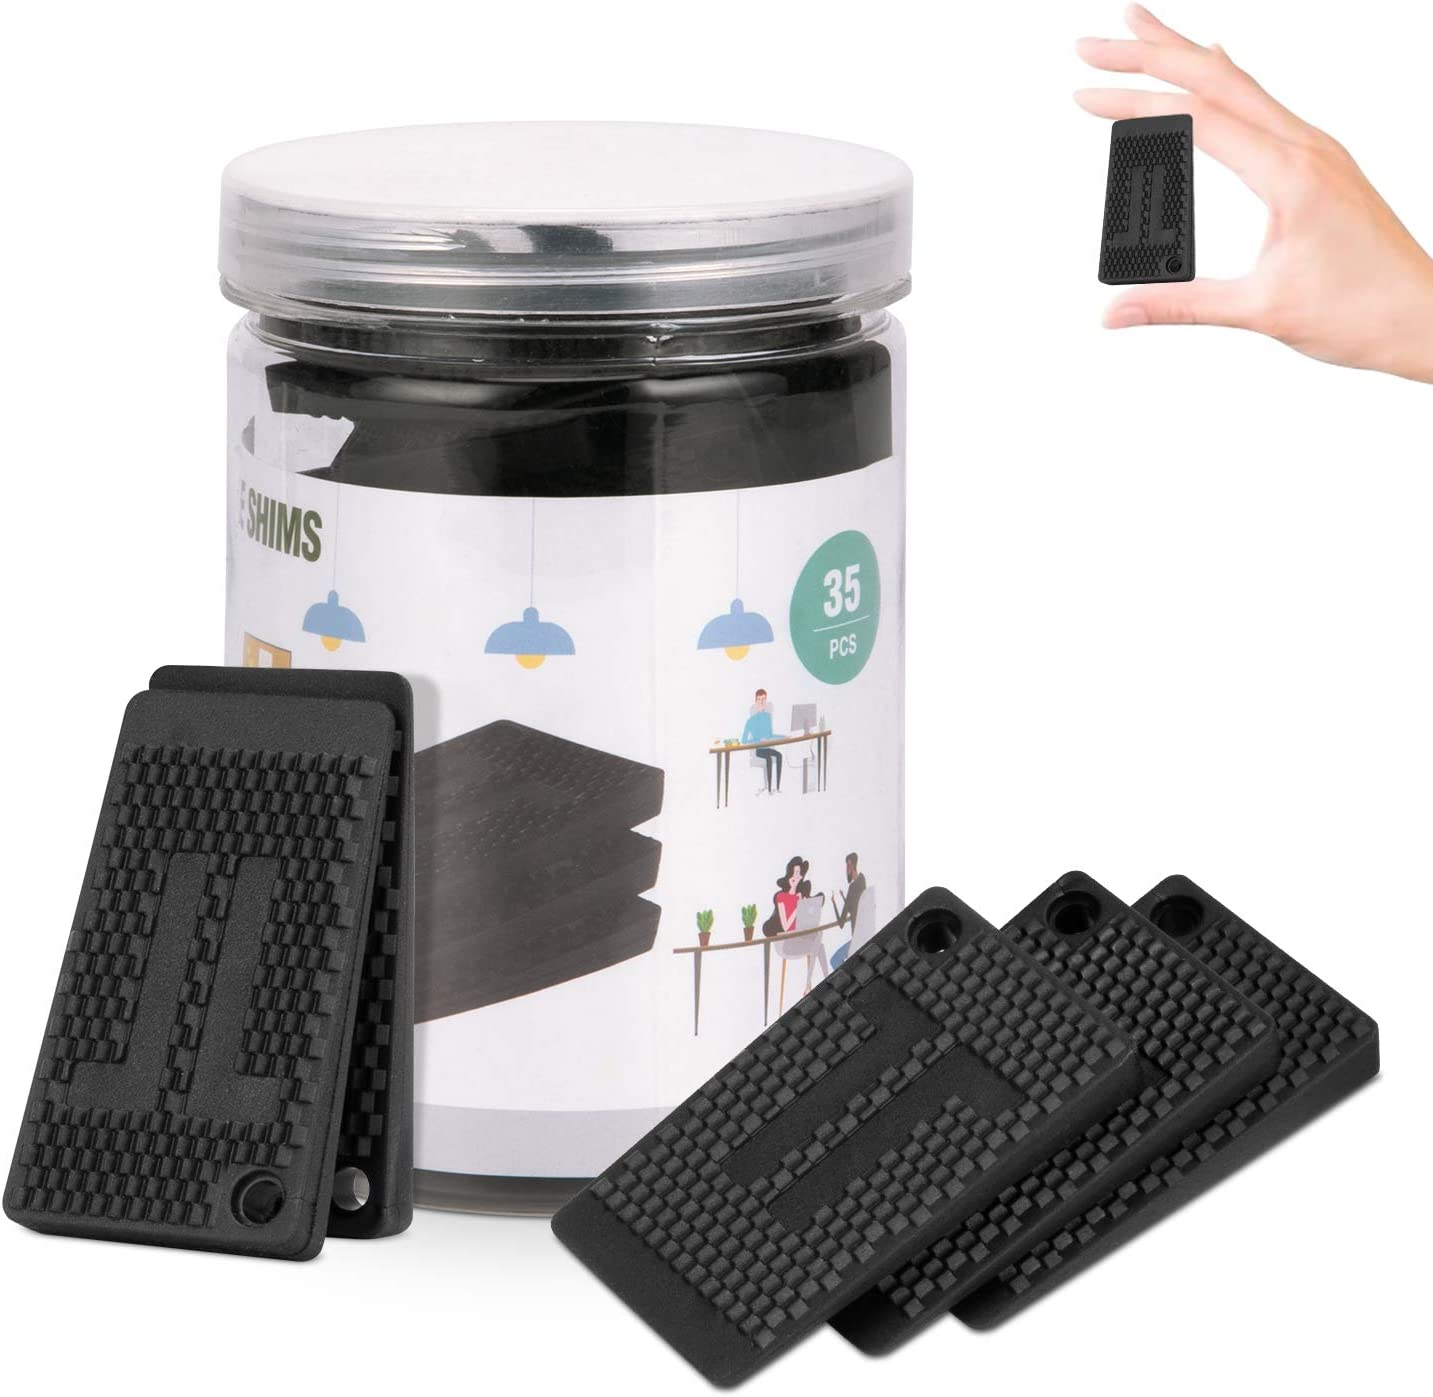 Plastic Shims,Furniture Levelers,Strong and Durable DIY Waterproof Rubber Feet Have Extreme Weight Capacity - Ideal Table Shims Non Slip for Furniture, Table, Chair, Cabinet,Table Leg,Toilet (A)